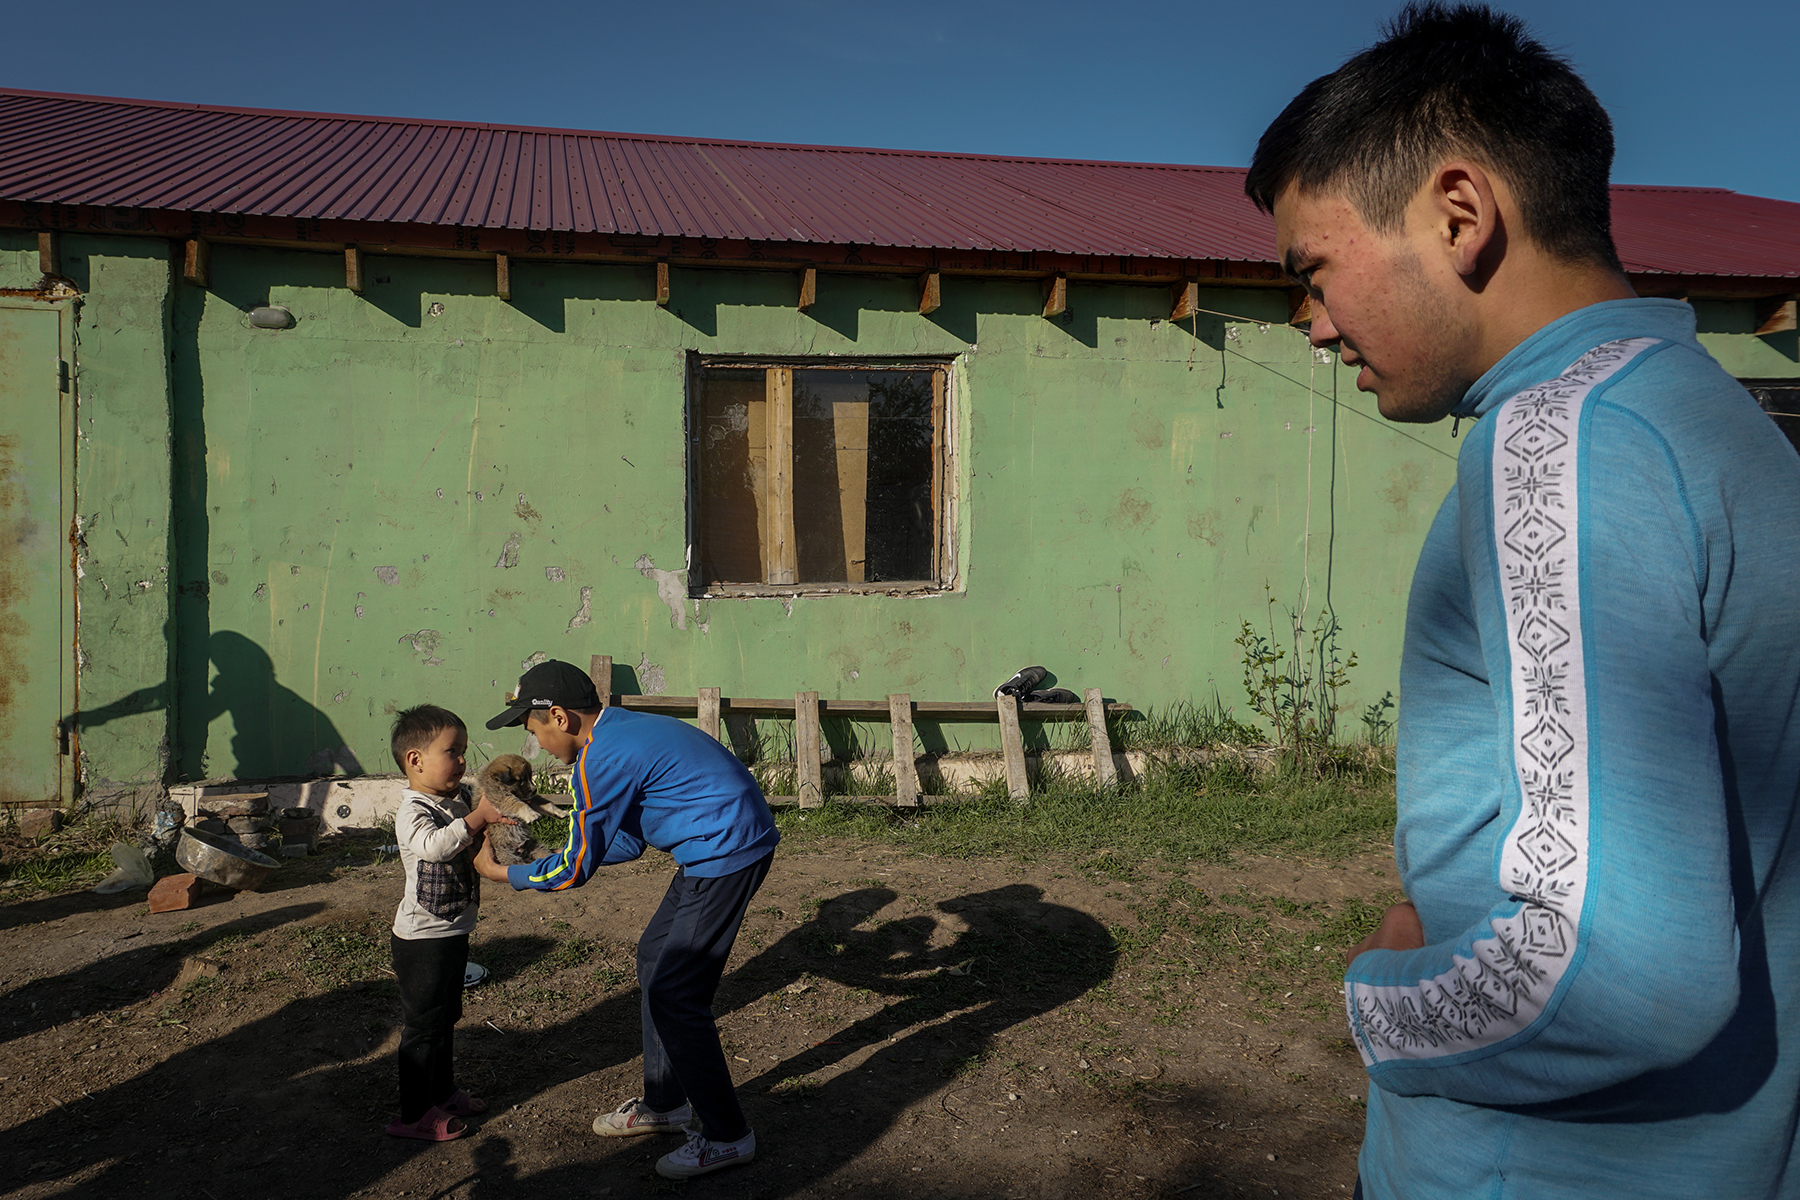 Eldos watches his brother play outside the house where they live with distant relatives on the outskirts of Nur-Sultan, Kazakhstan, on May 17. Their caretakers have three young children of their own, making it a nine-person household (with at least one puppy) surviving on less than 0 per month.